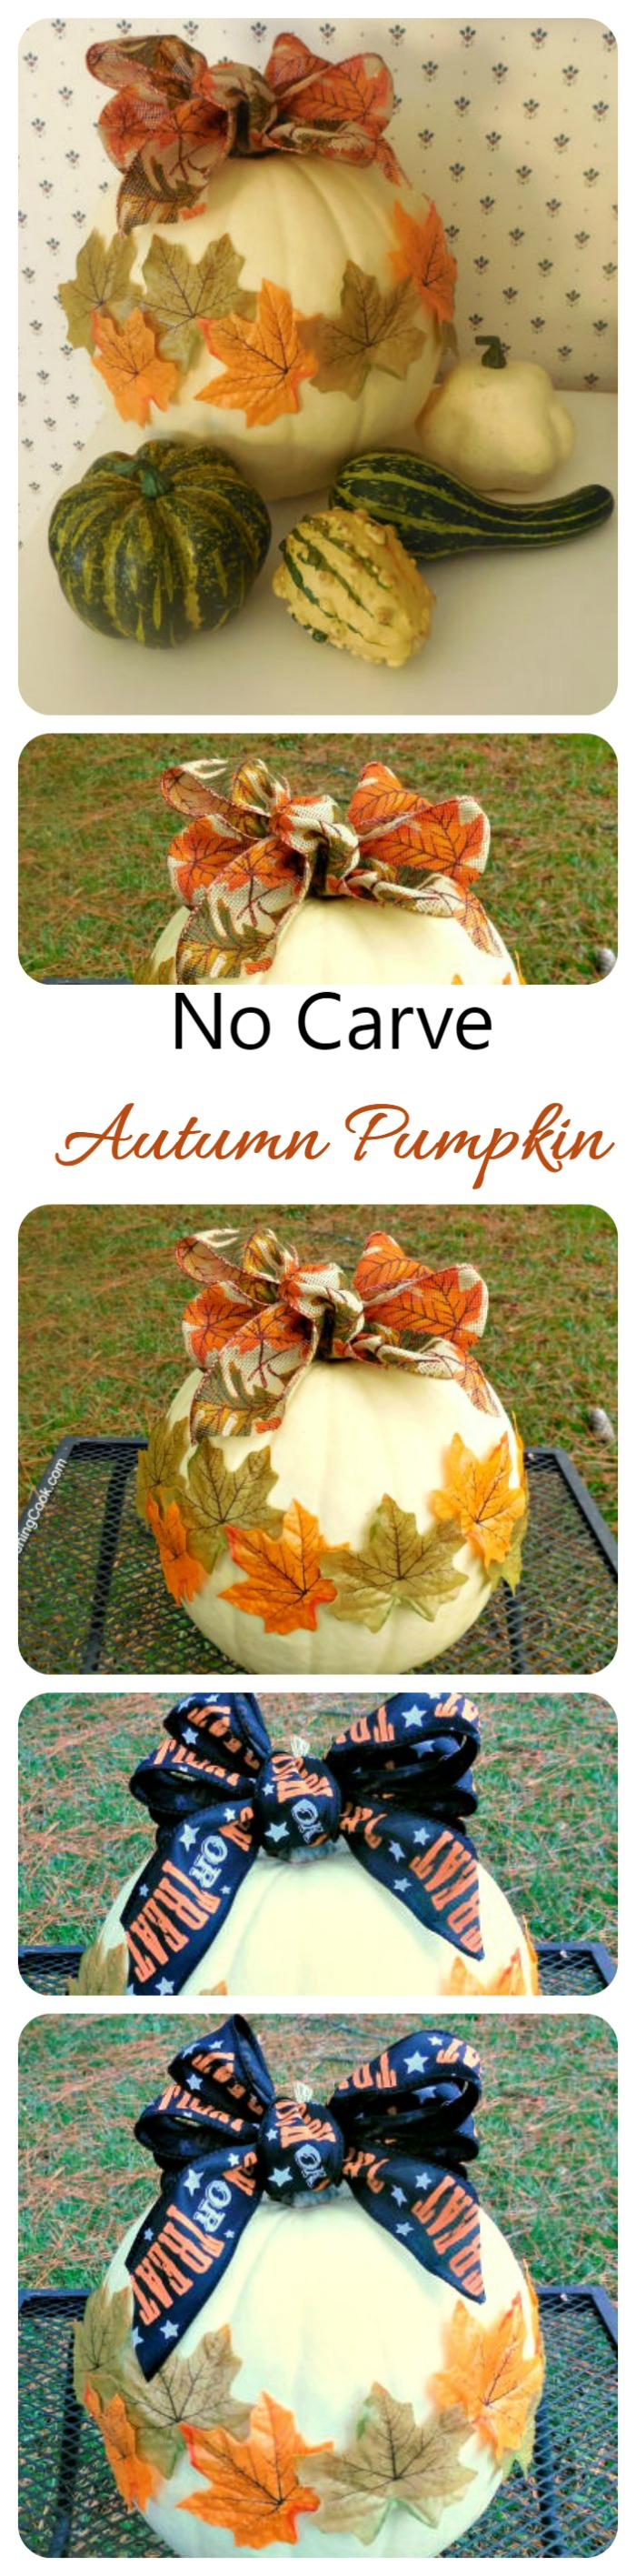 This no carve autumn leaf pumpkin comes together very quickly and adds a nice seasonal touch to your front porch.